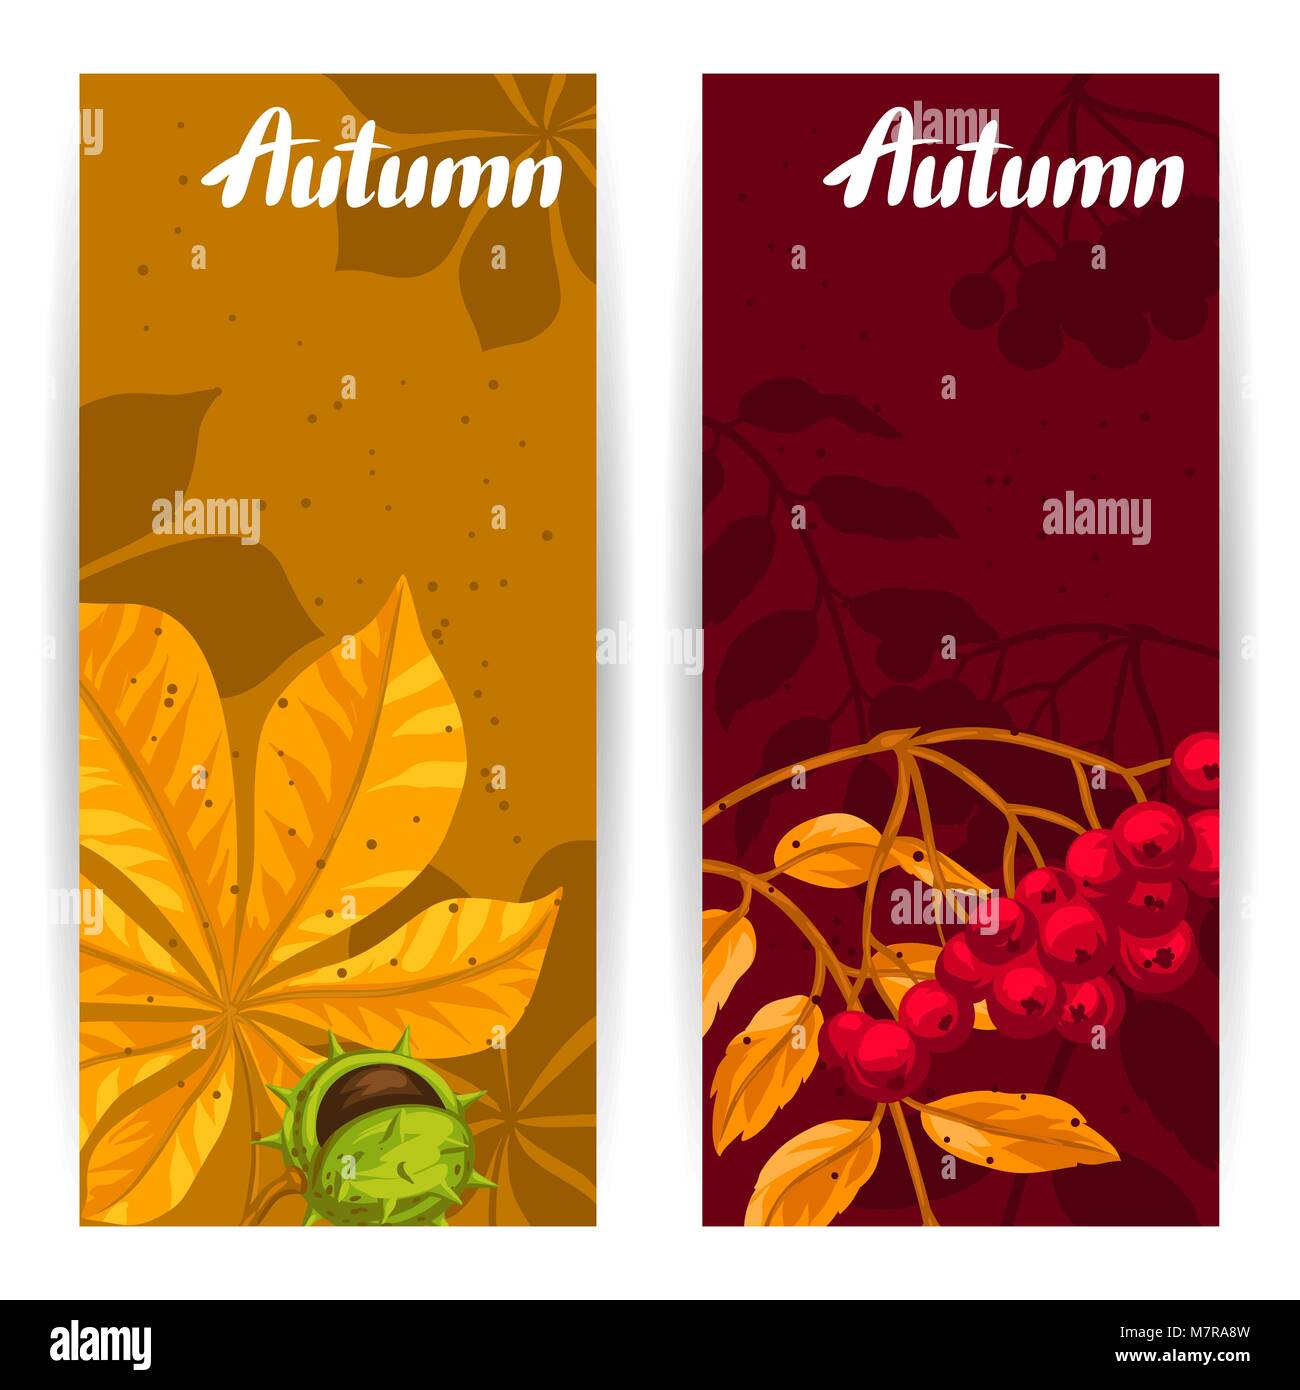 banners with autumn leaves and plants design for advertising stock